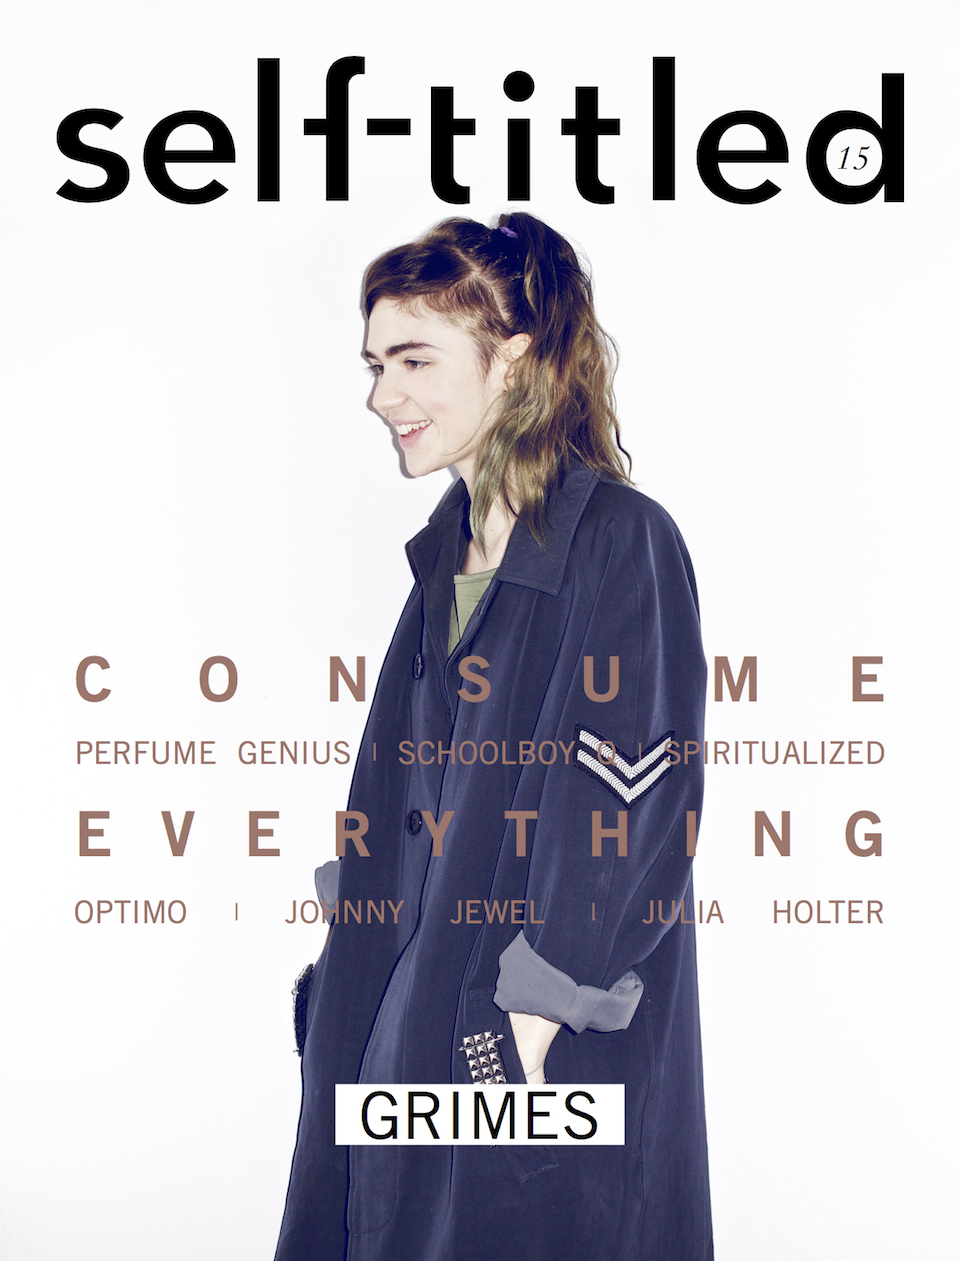 Grimes magazine cover